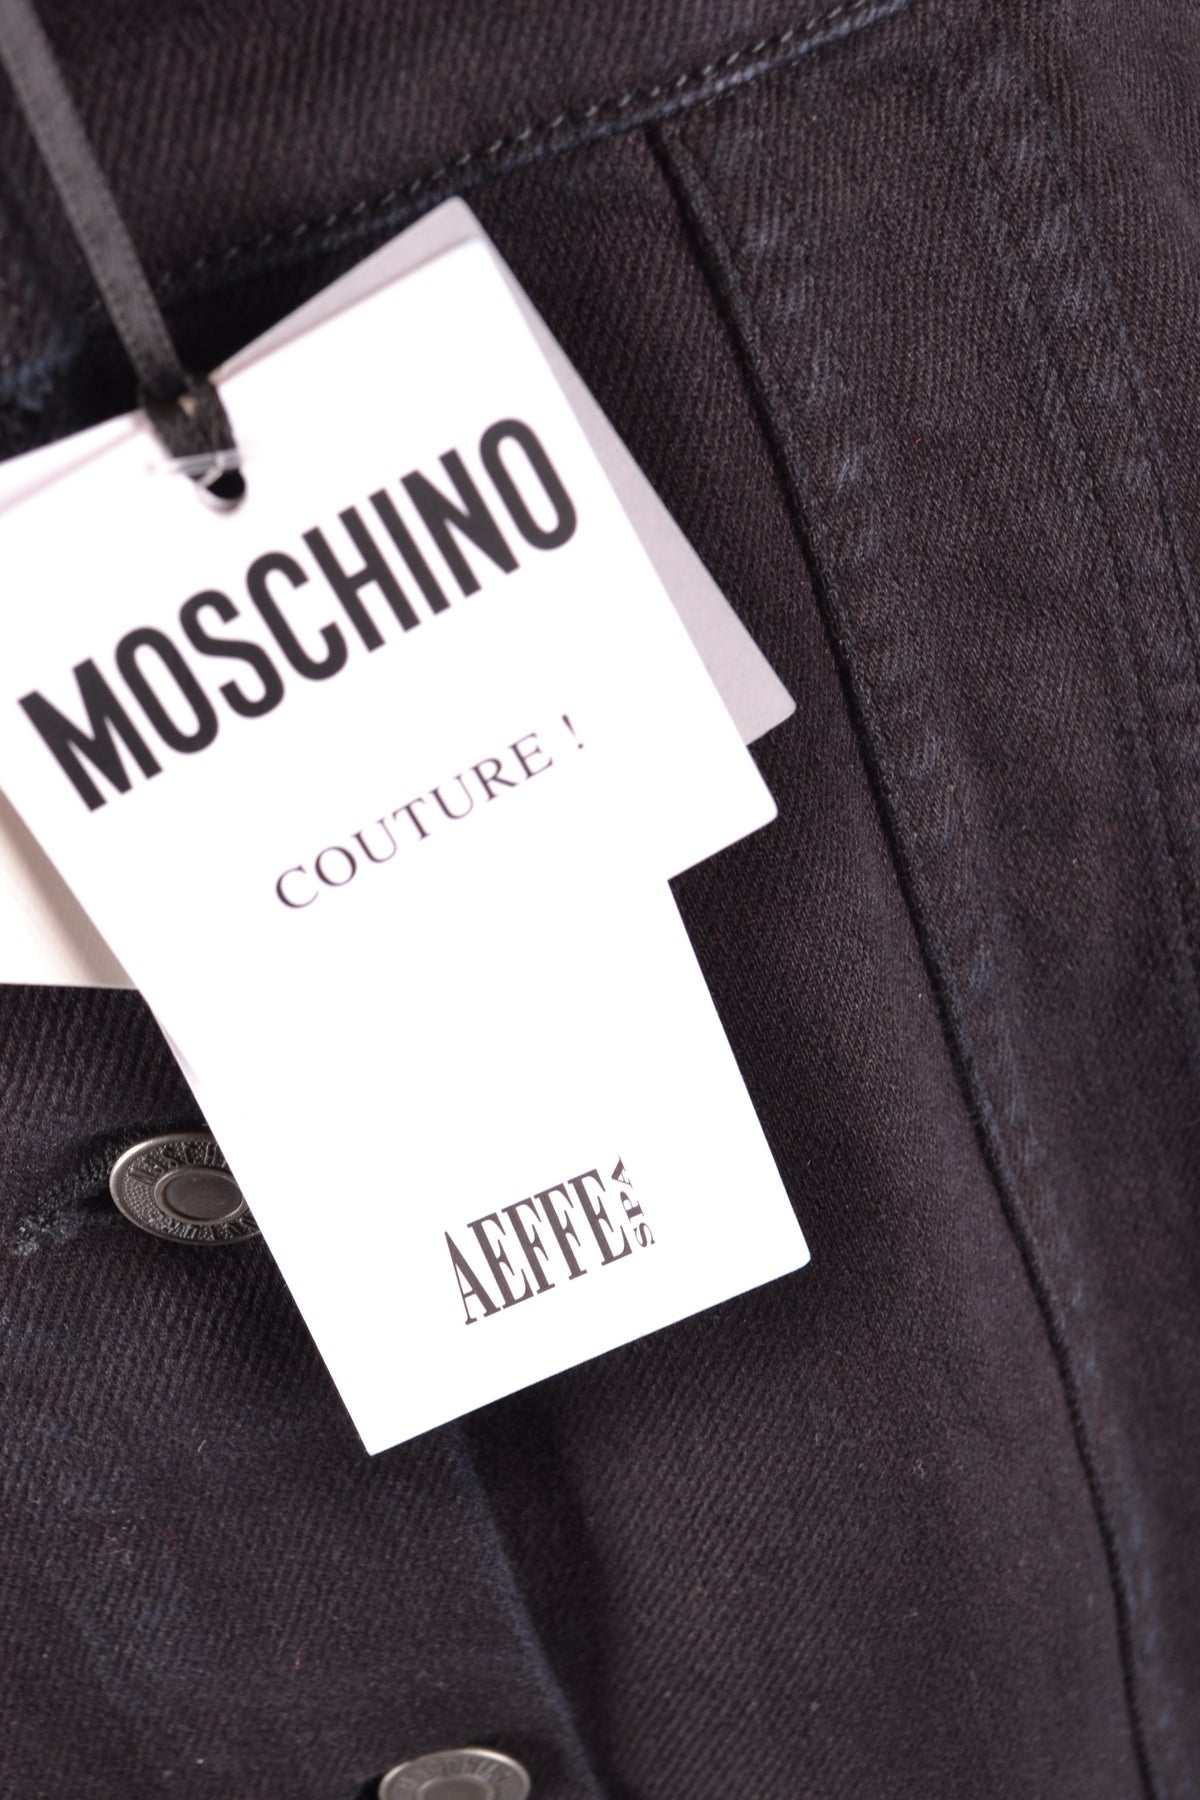 Dress Moschino-Dress - WOMAN-Product Details Season: Spring / SummerTerms: New With LabelMain Color: BlackGender: WomanMade In: ItalyManufacturer Part Number: E A0461Size: ItYear: 2018Clothing Type: TaglieurComposition: Cotton 98%, Elastane 2%-Keyomi-Sook